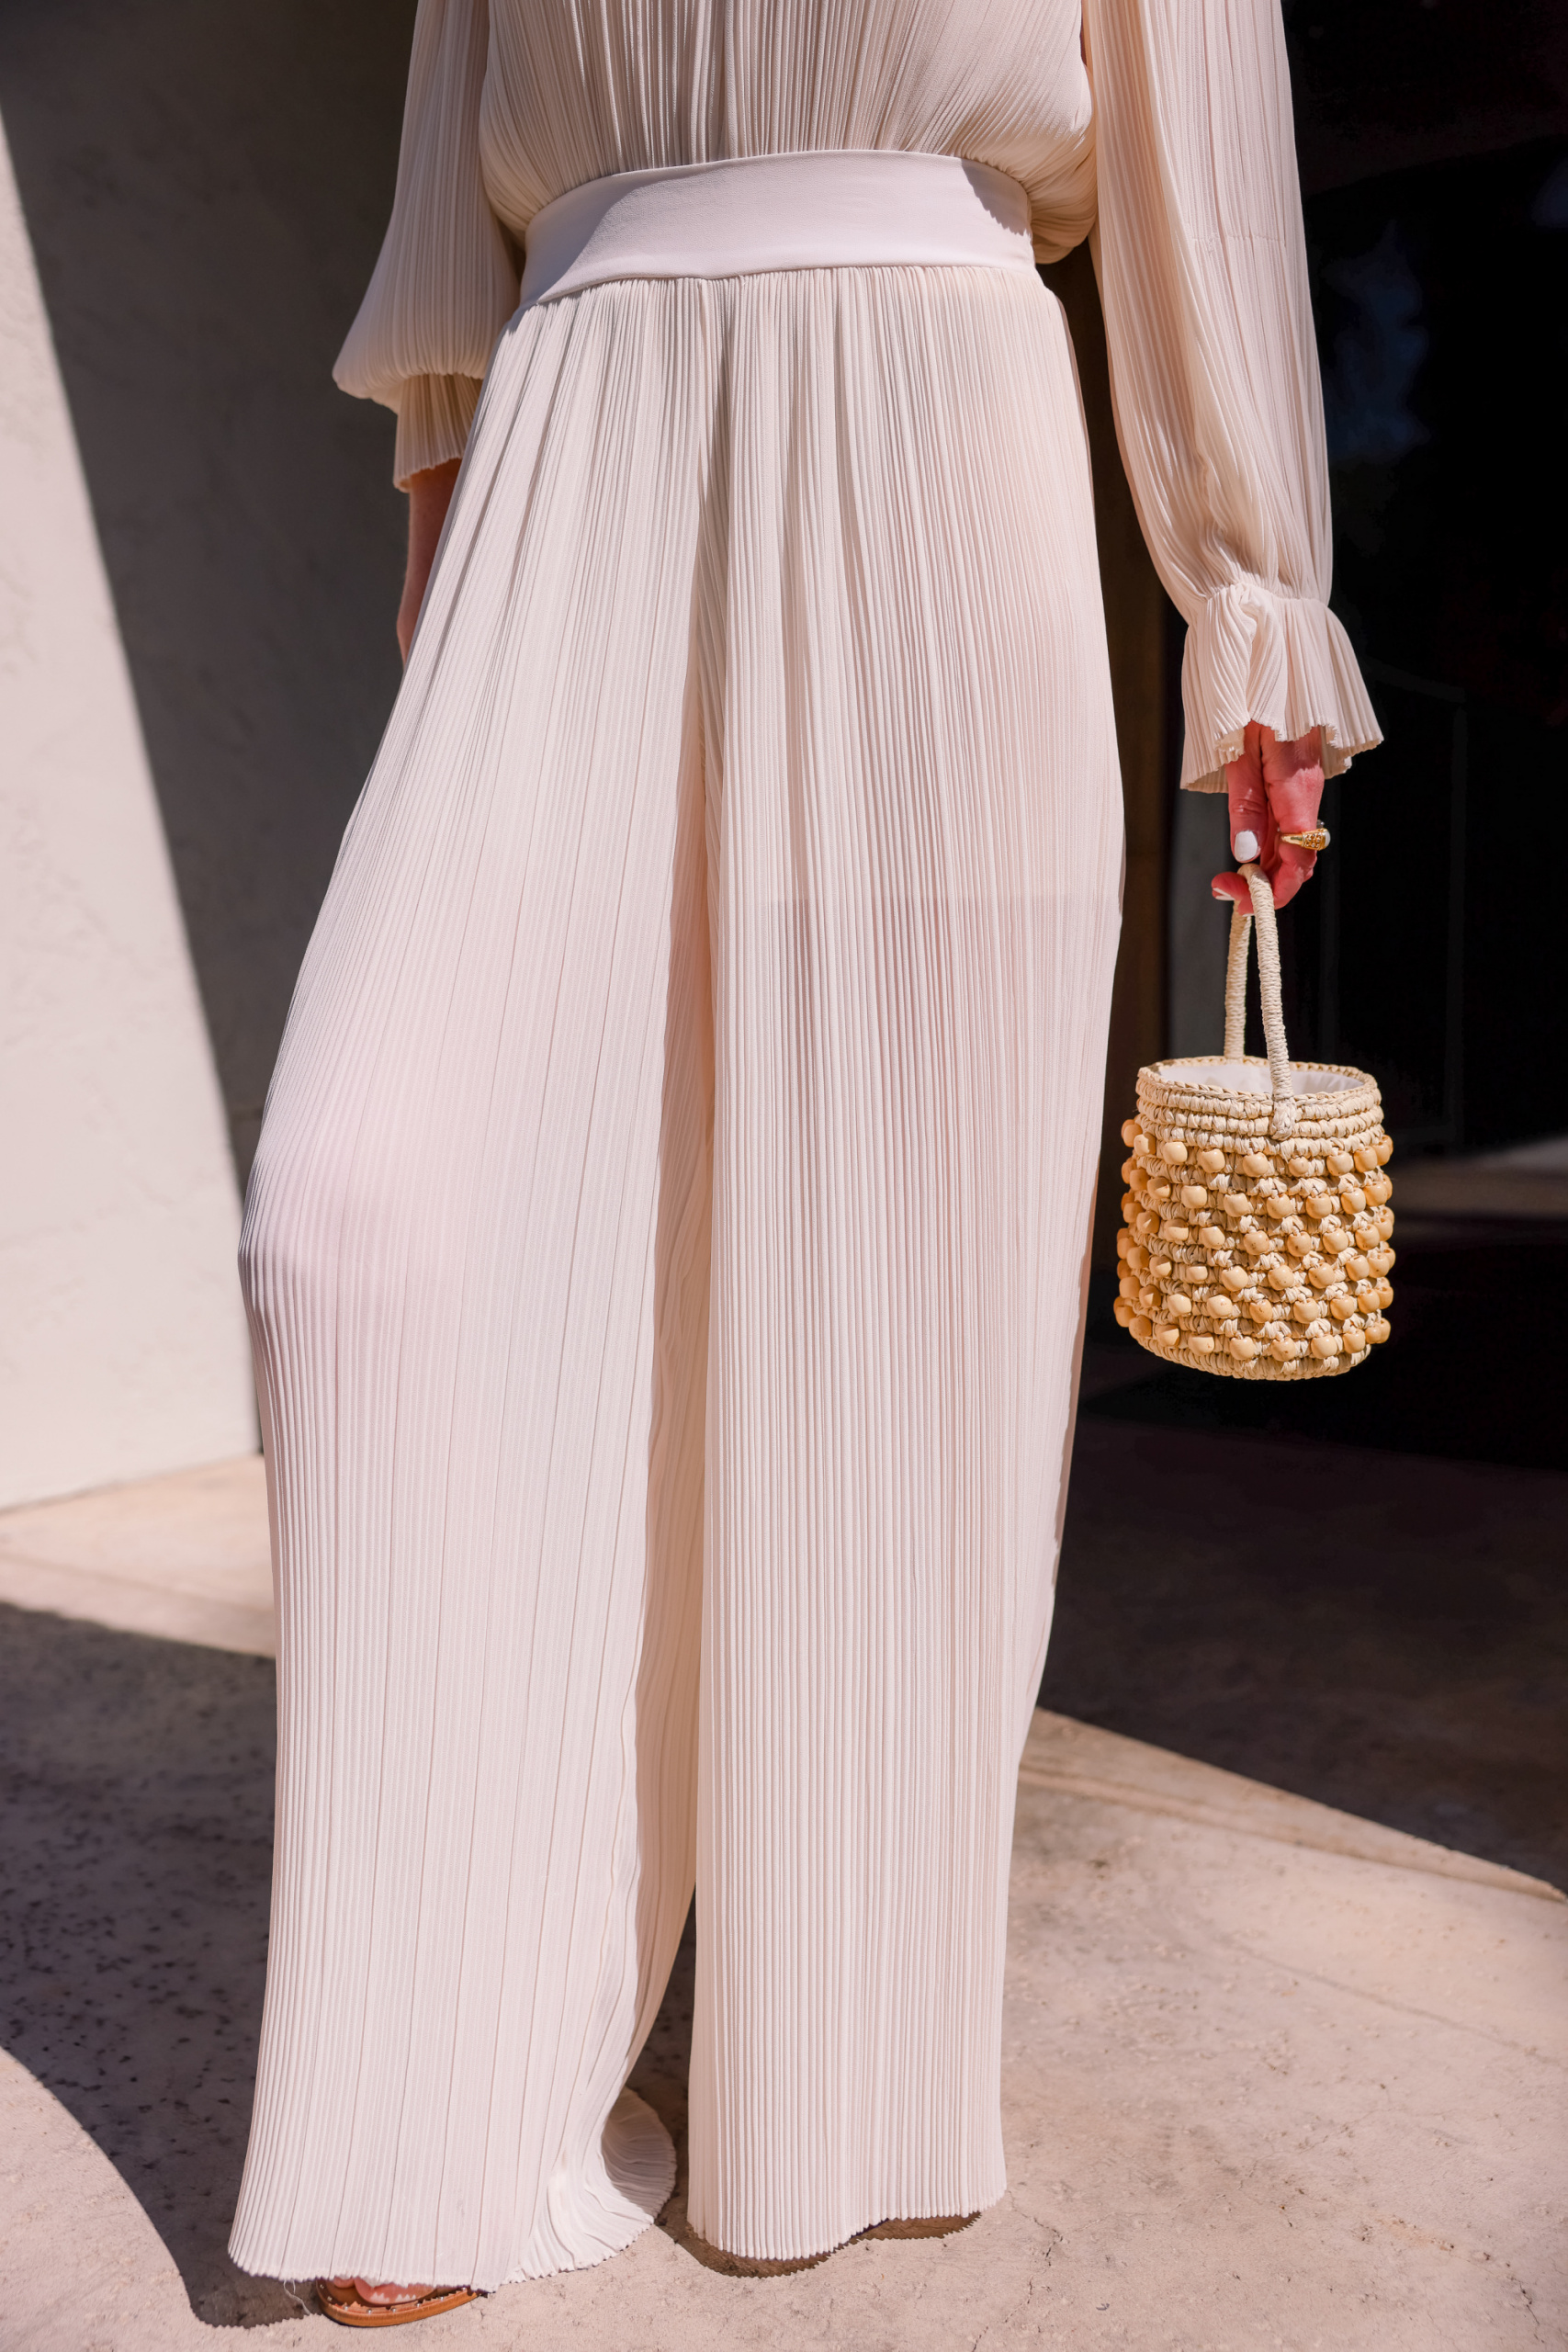 hemline length of pants featuring white pleated pants